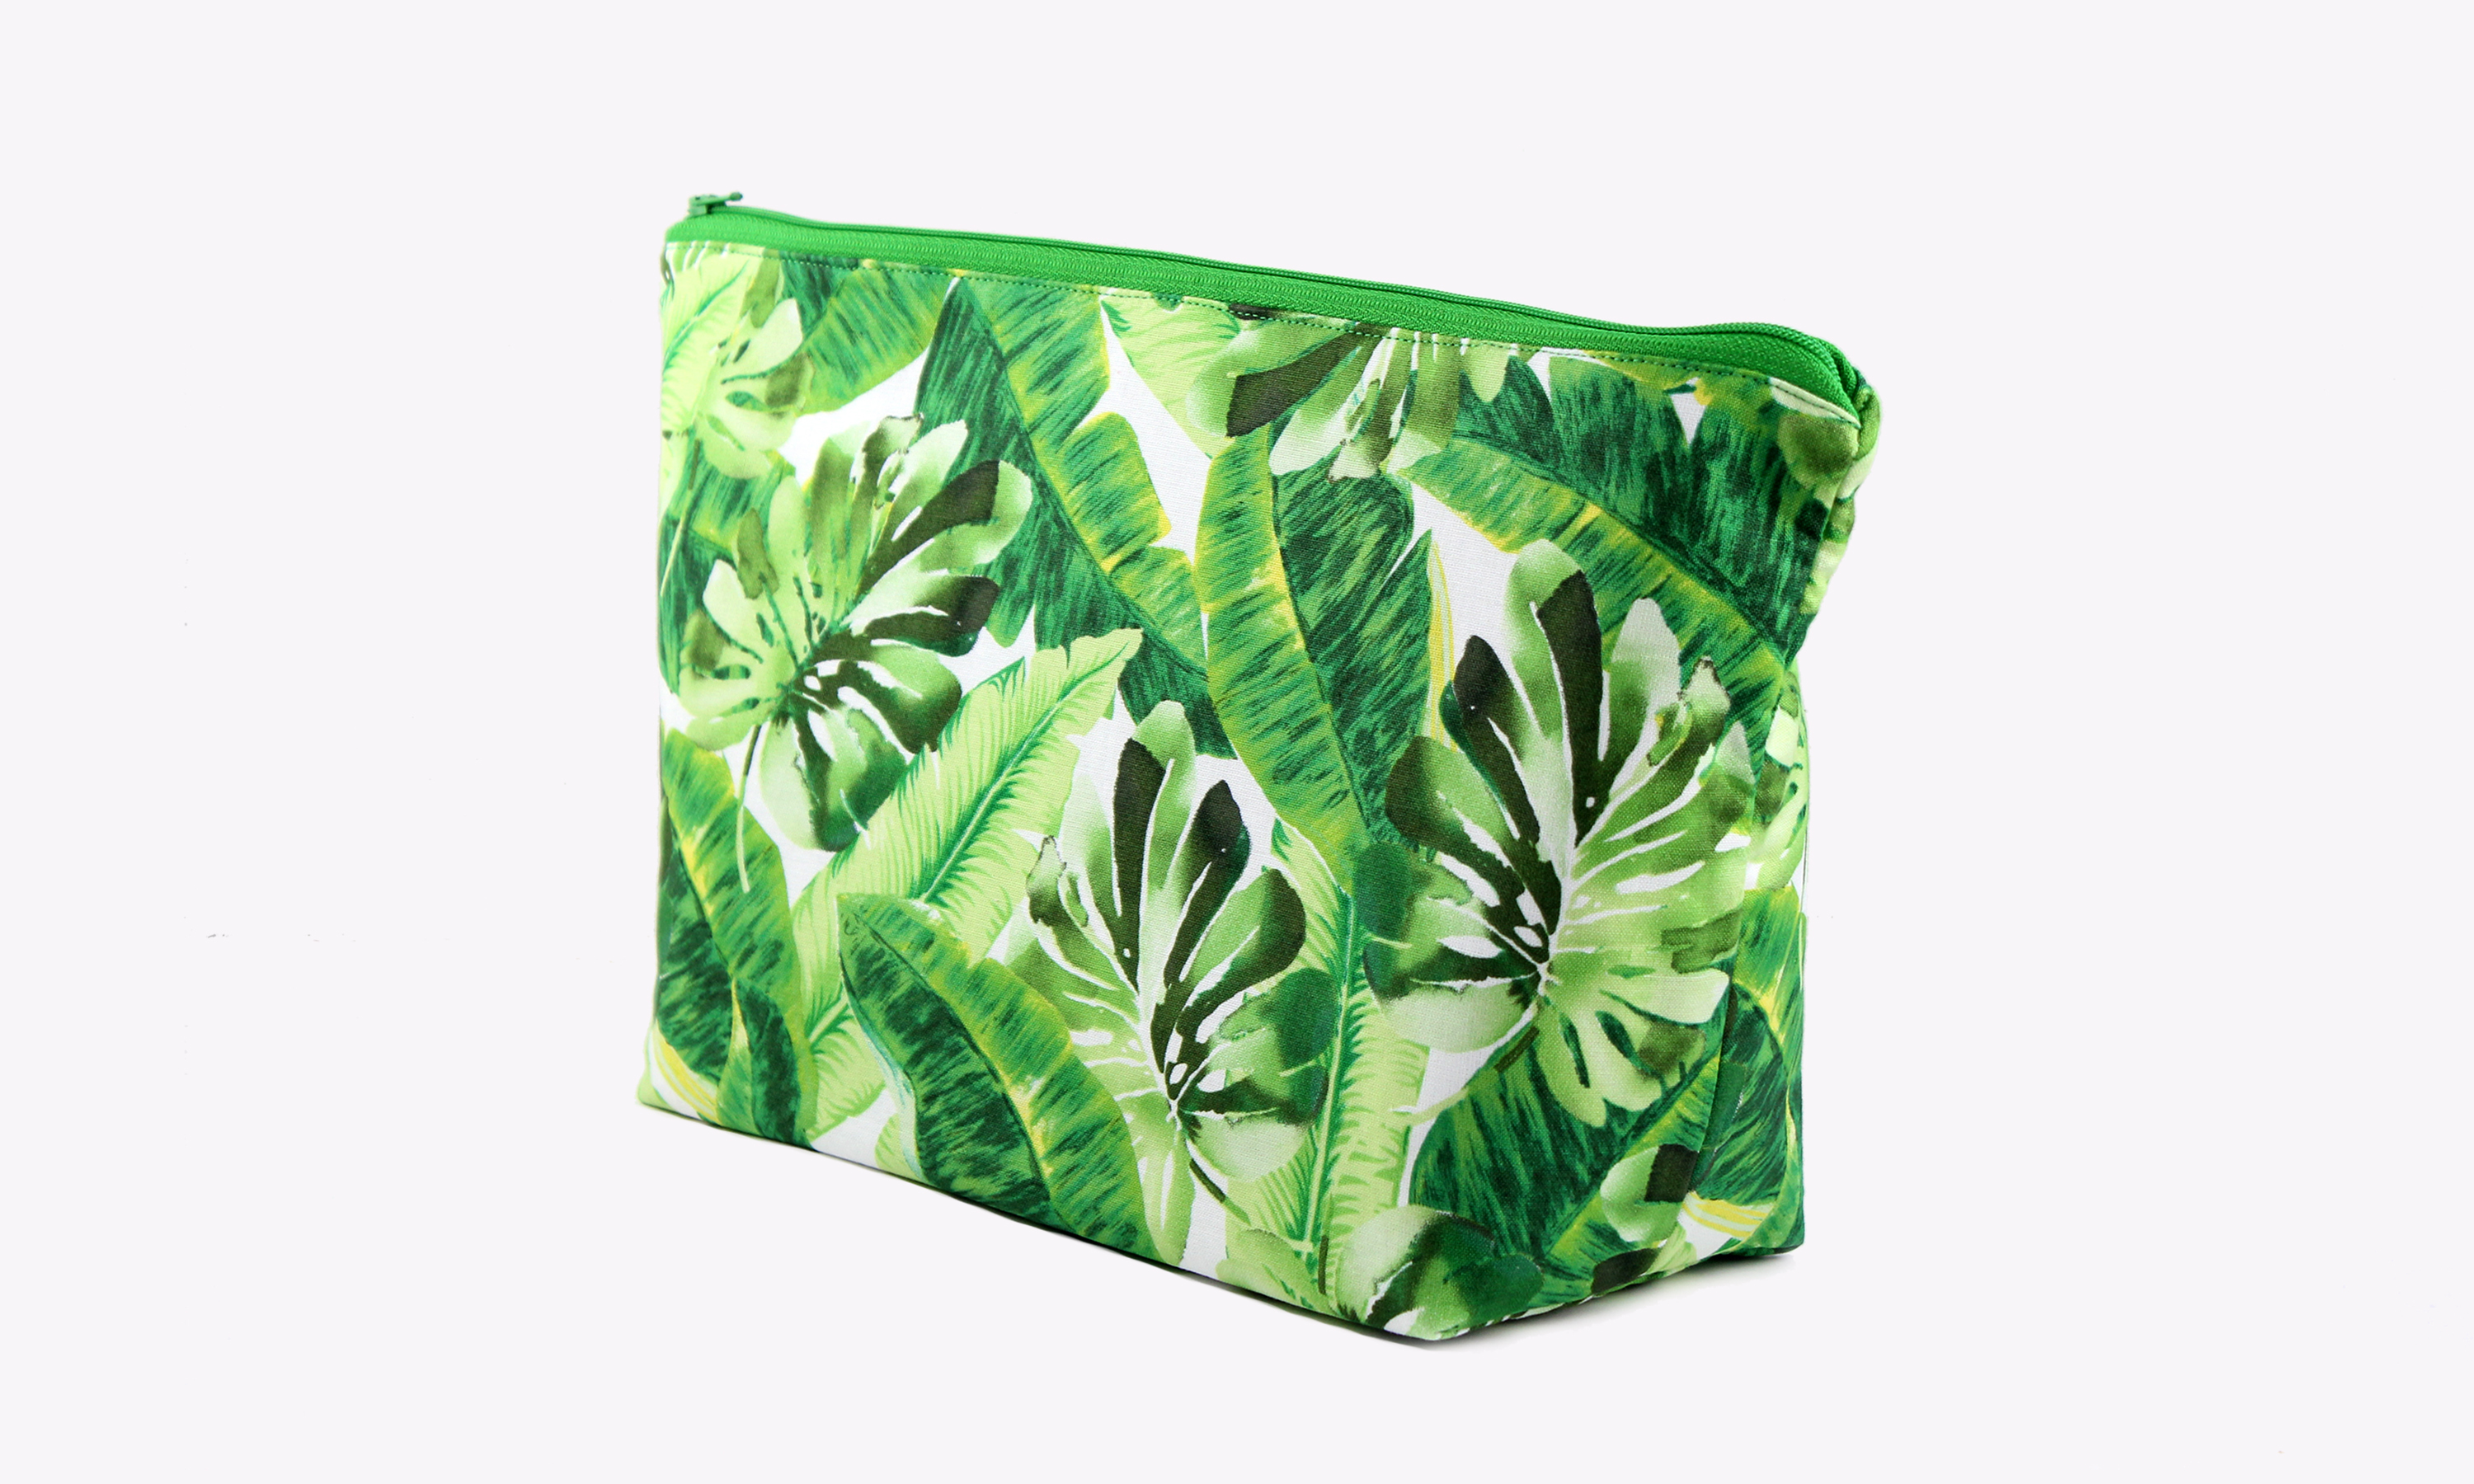 waterproof-pouch-green-leaf.jpg?mtime=20171127093402#asset:98942